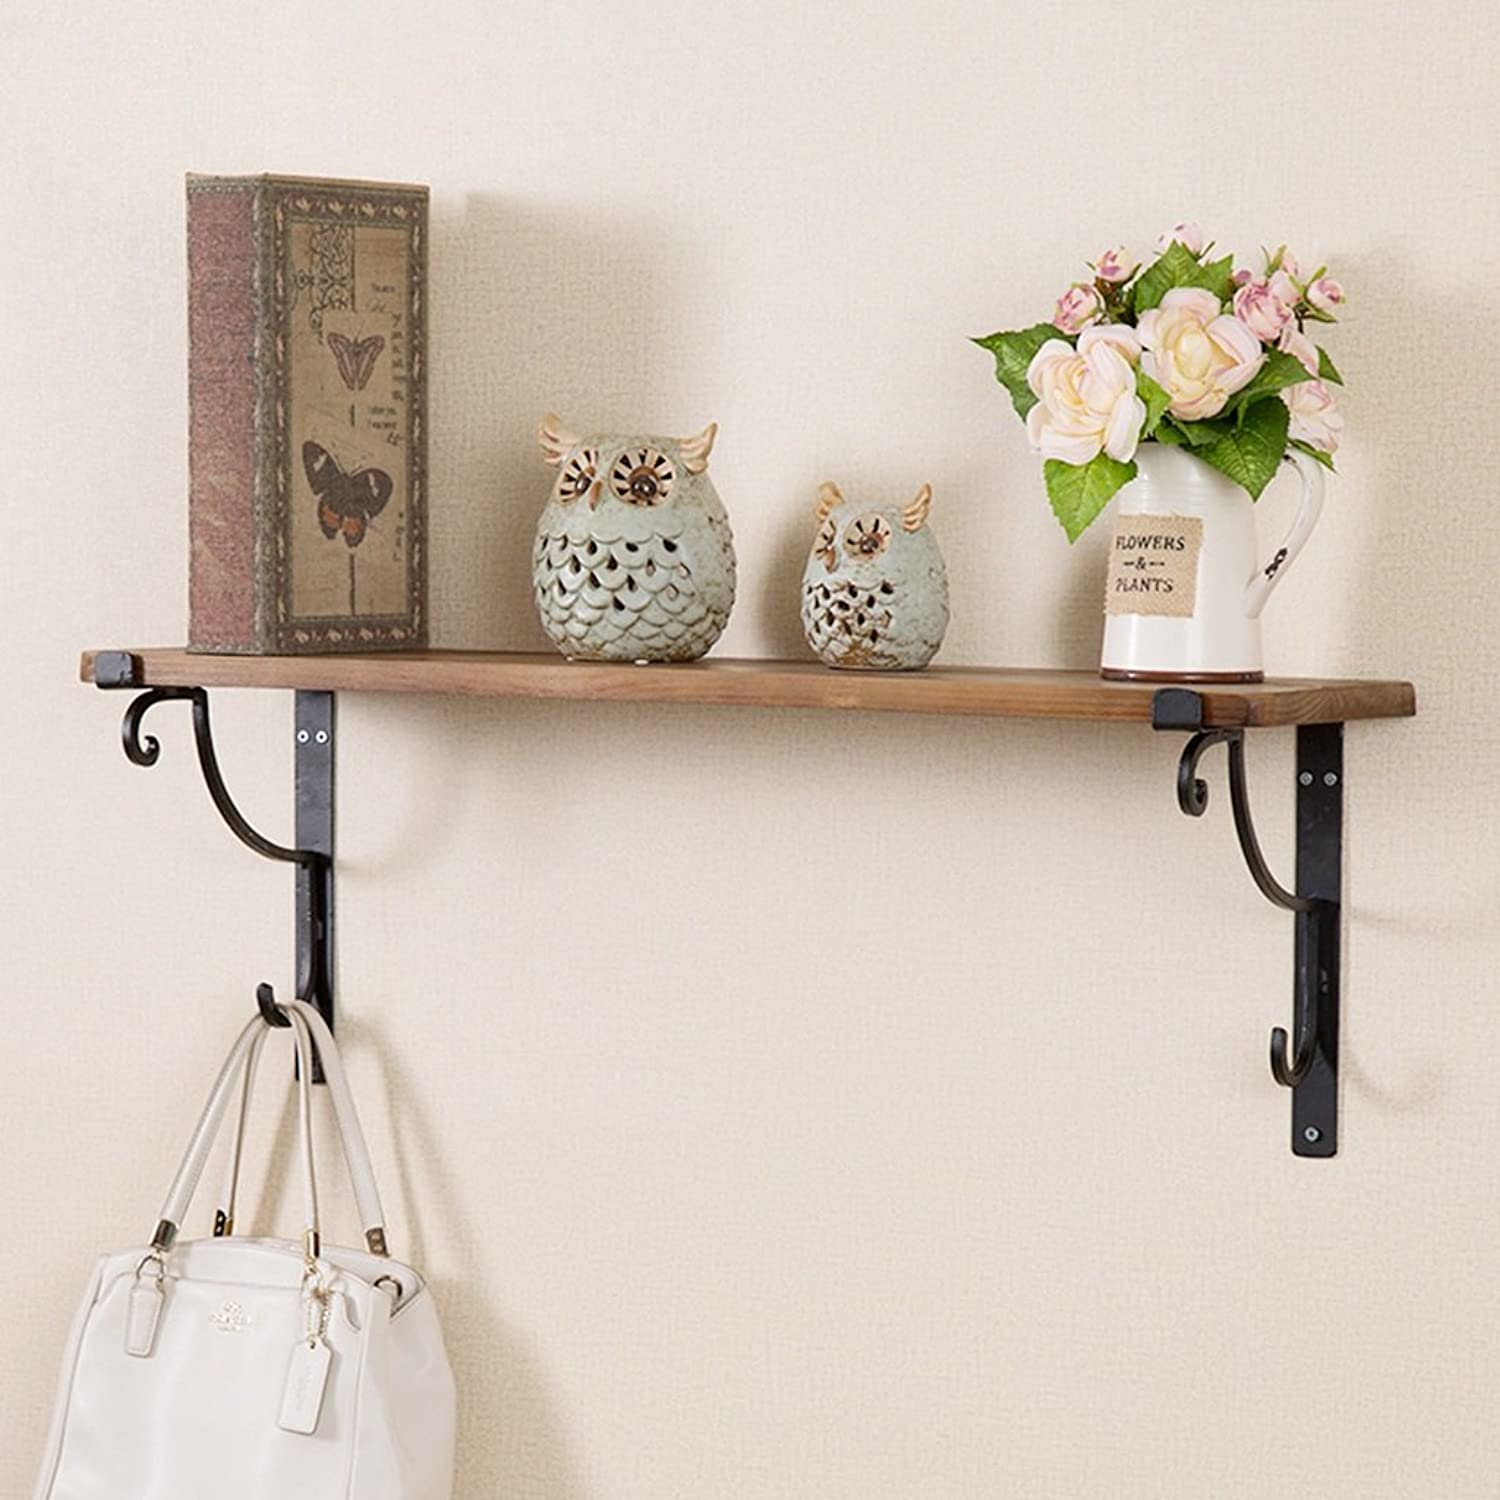 Kitchen & Dining Wall Shelves Retro Solid Wood Board Wrought Iron Wall Shelf Wall partition Frame Wall-Mounted Decorative Racks (Size   80X20X2CM)